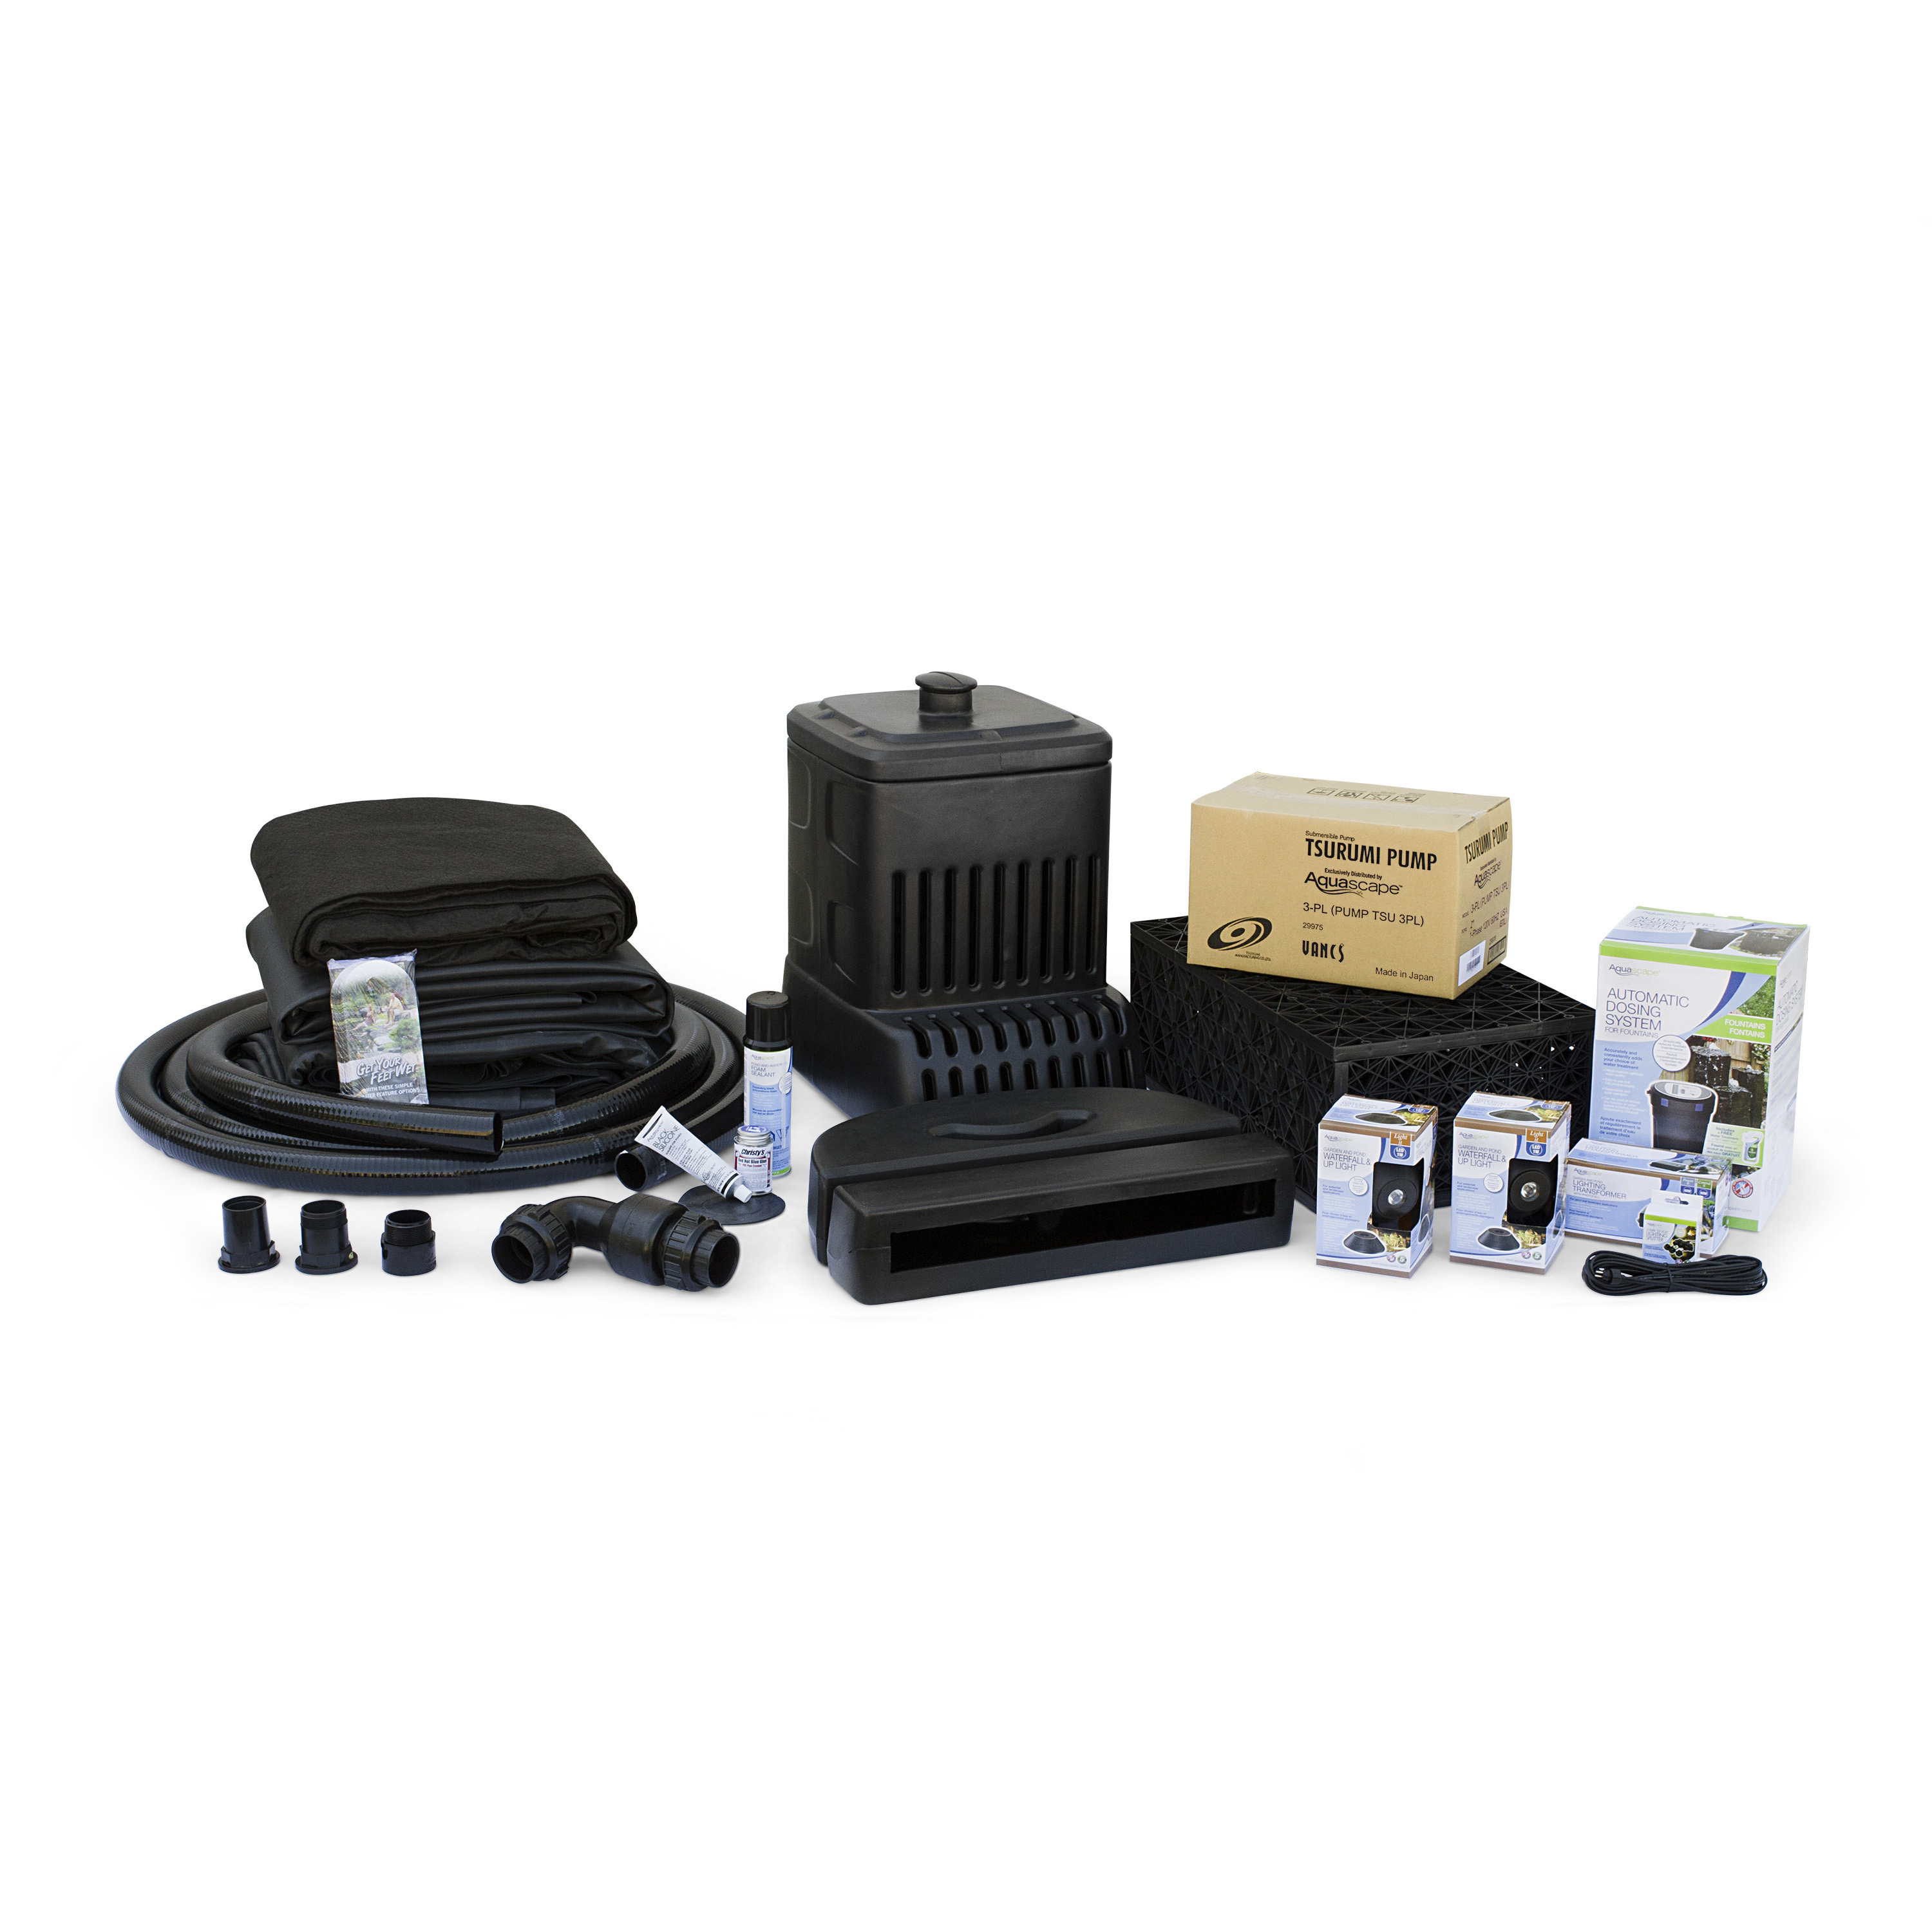 Medium Pondless Waterfall Kit 16' Stream with 3-PL 3000 Pond Pump